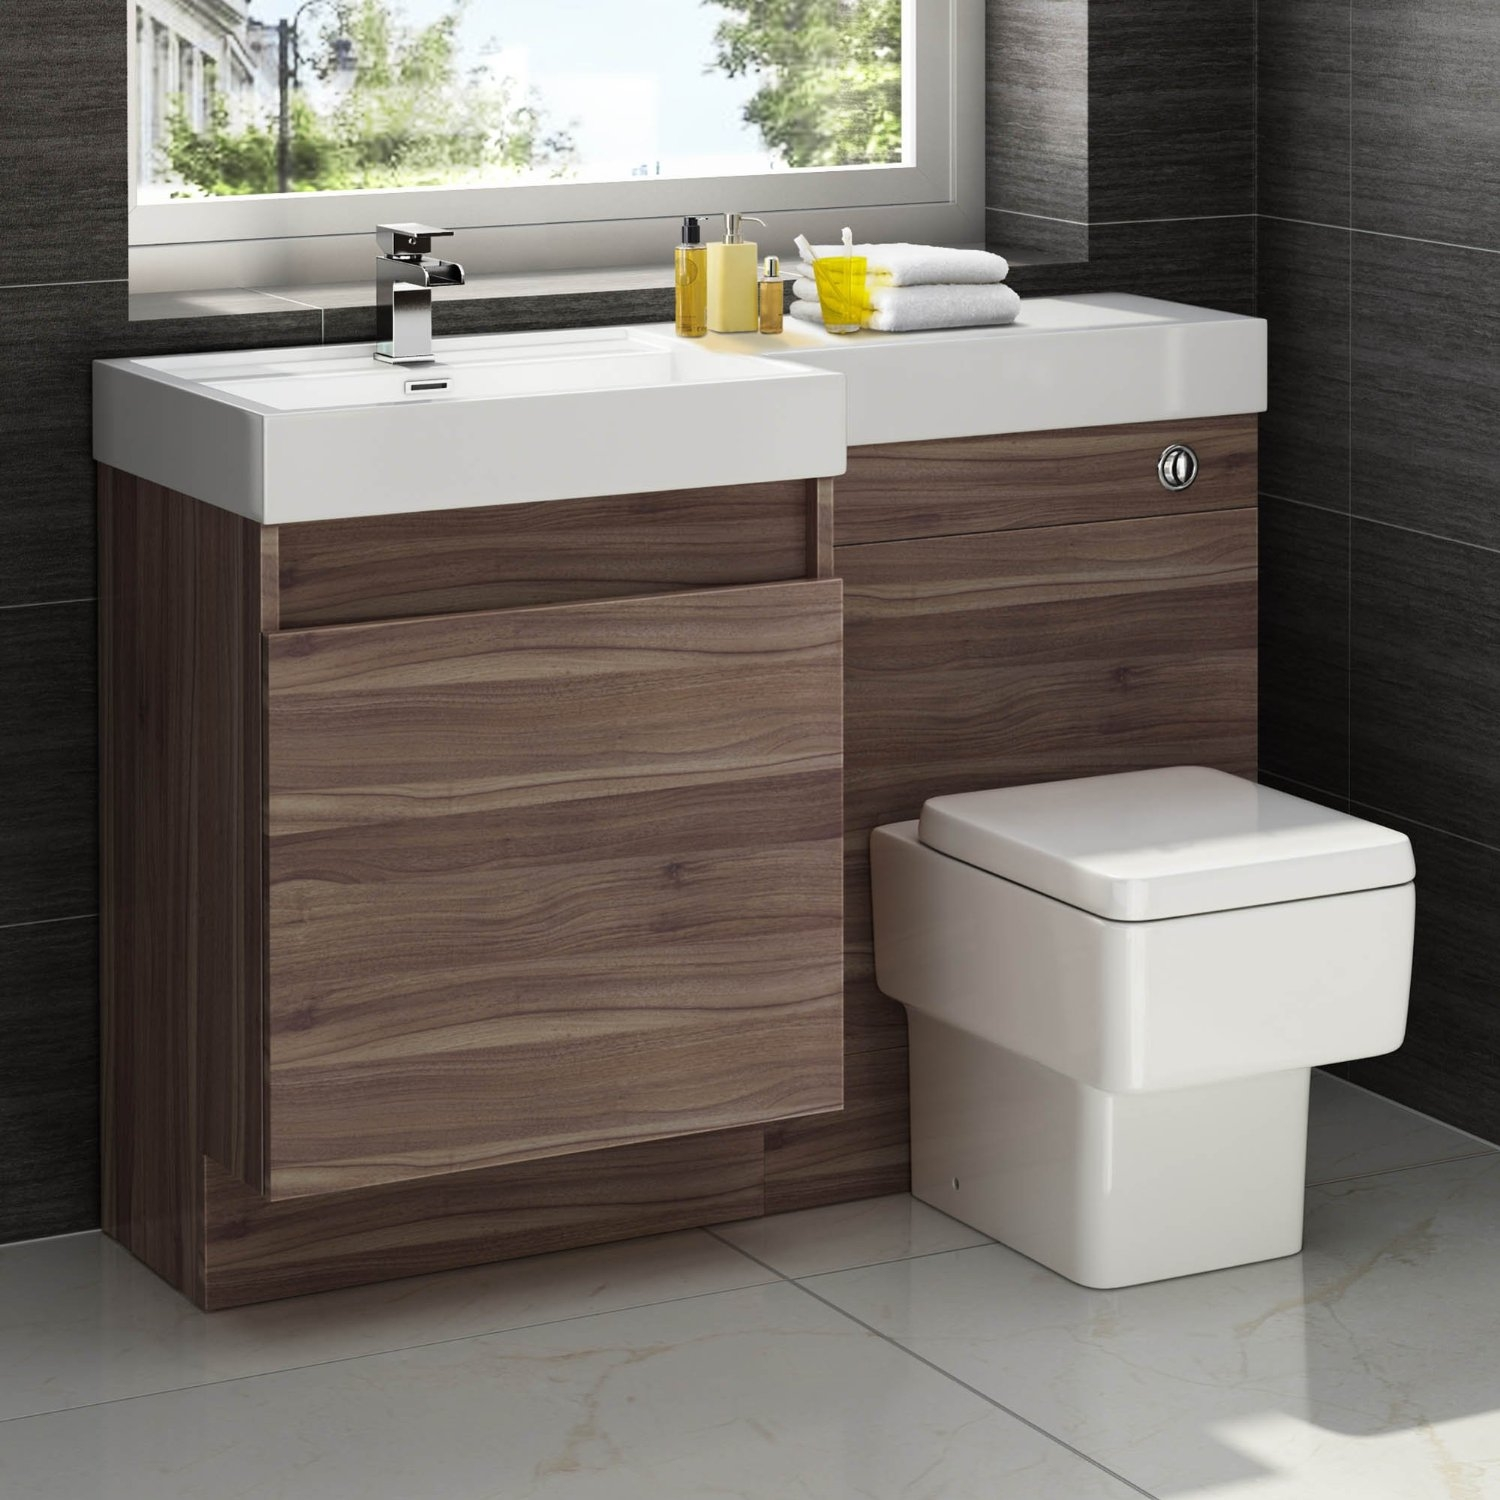 Square Bathroom Sink And Vanity Unit